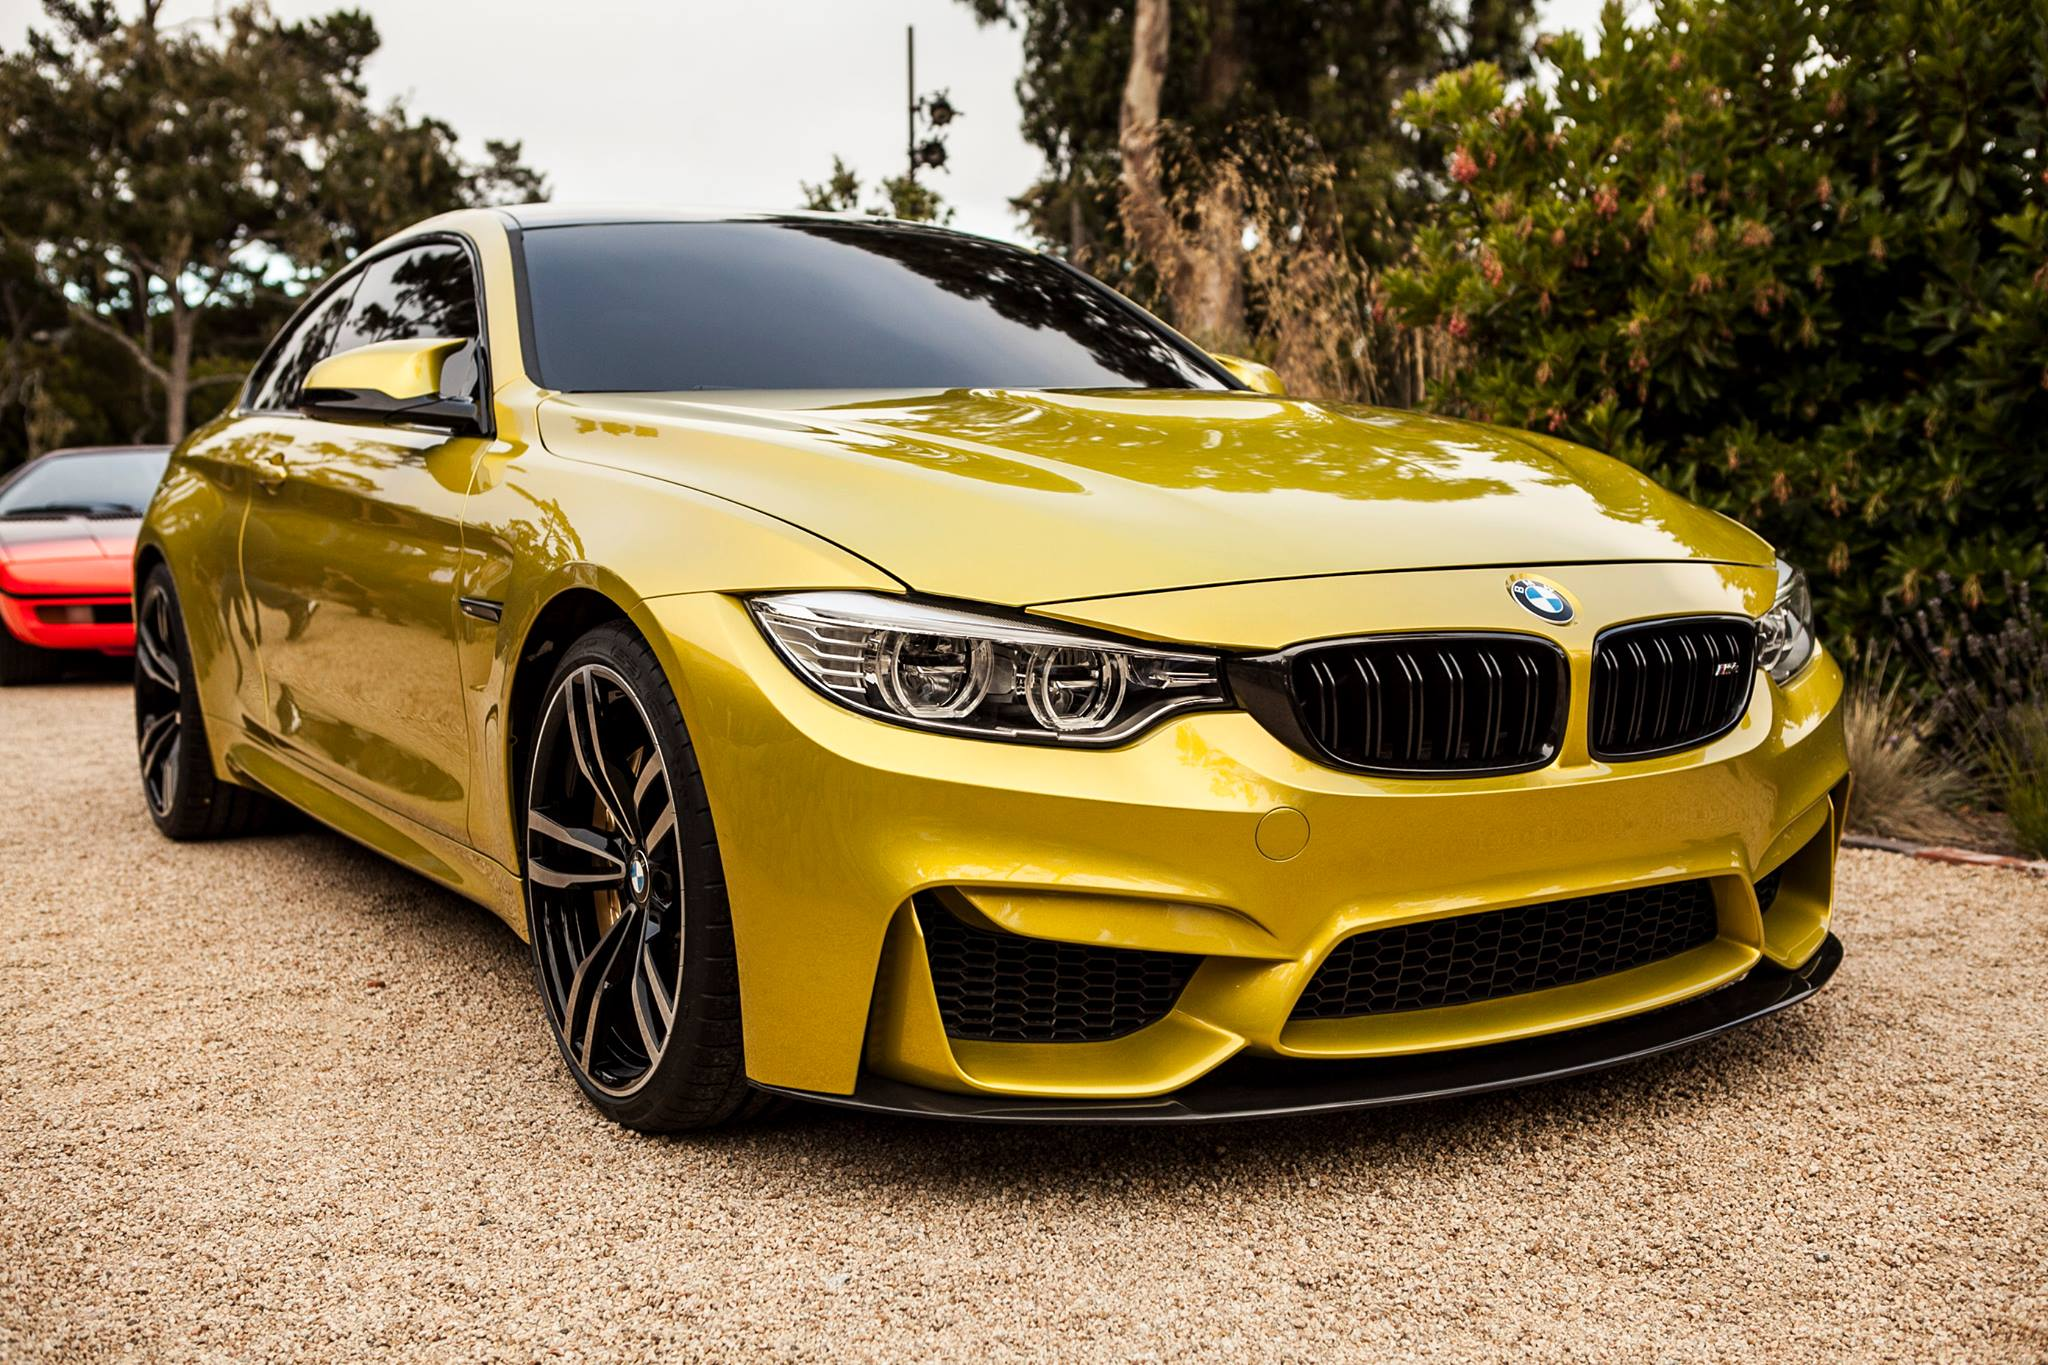 2014 Bmw M3 M4 Gets 430 Hp From Twin Turbo Inline 6 With